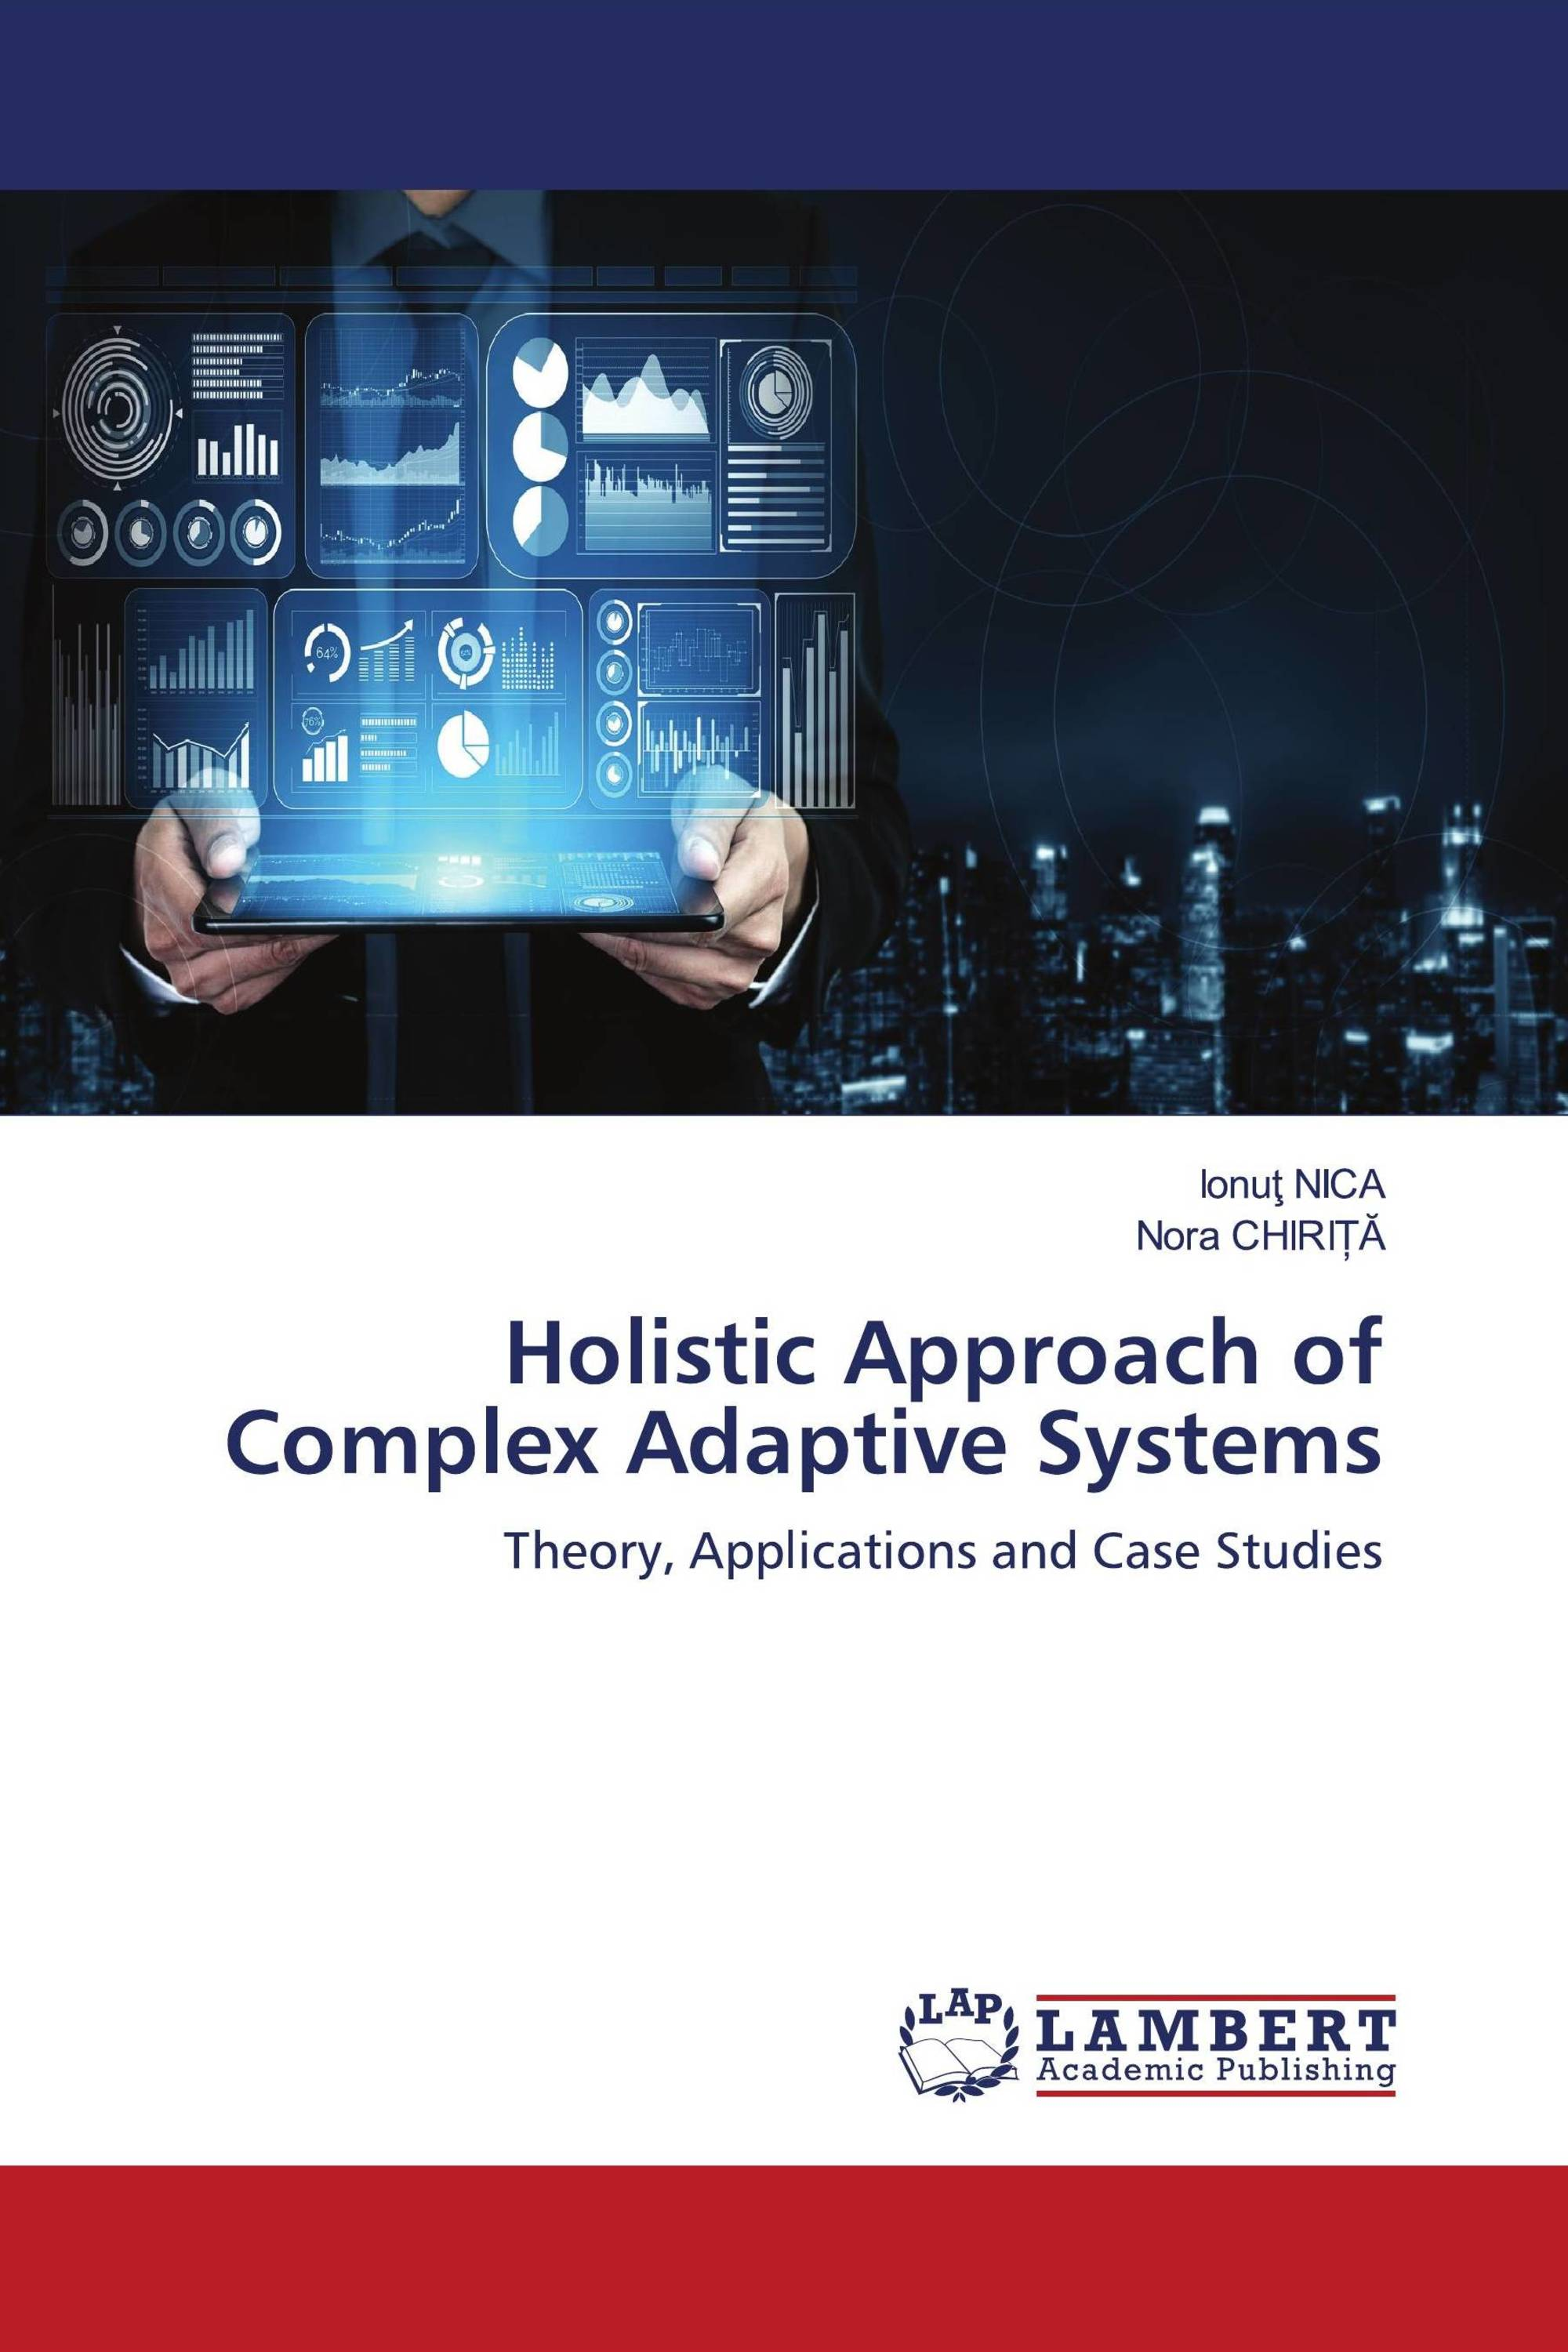 Holistic Approach of Complex Adaptive Systems